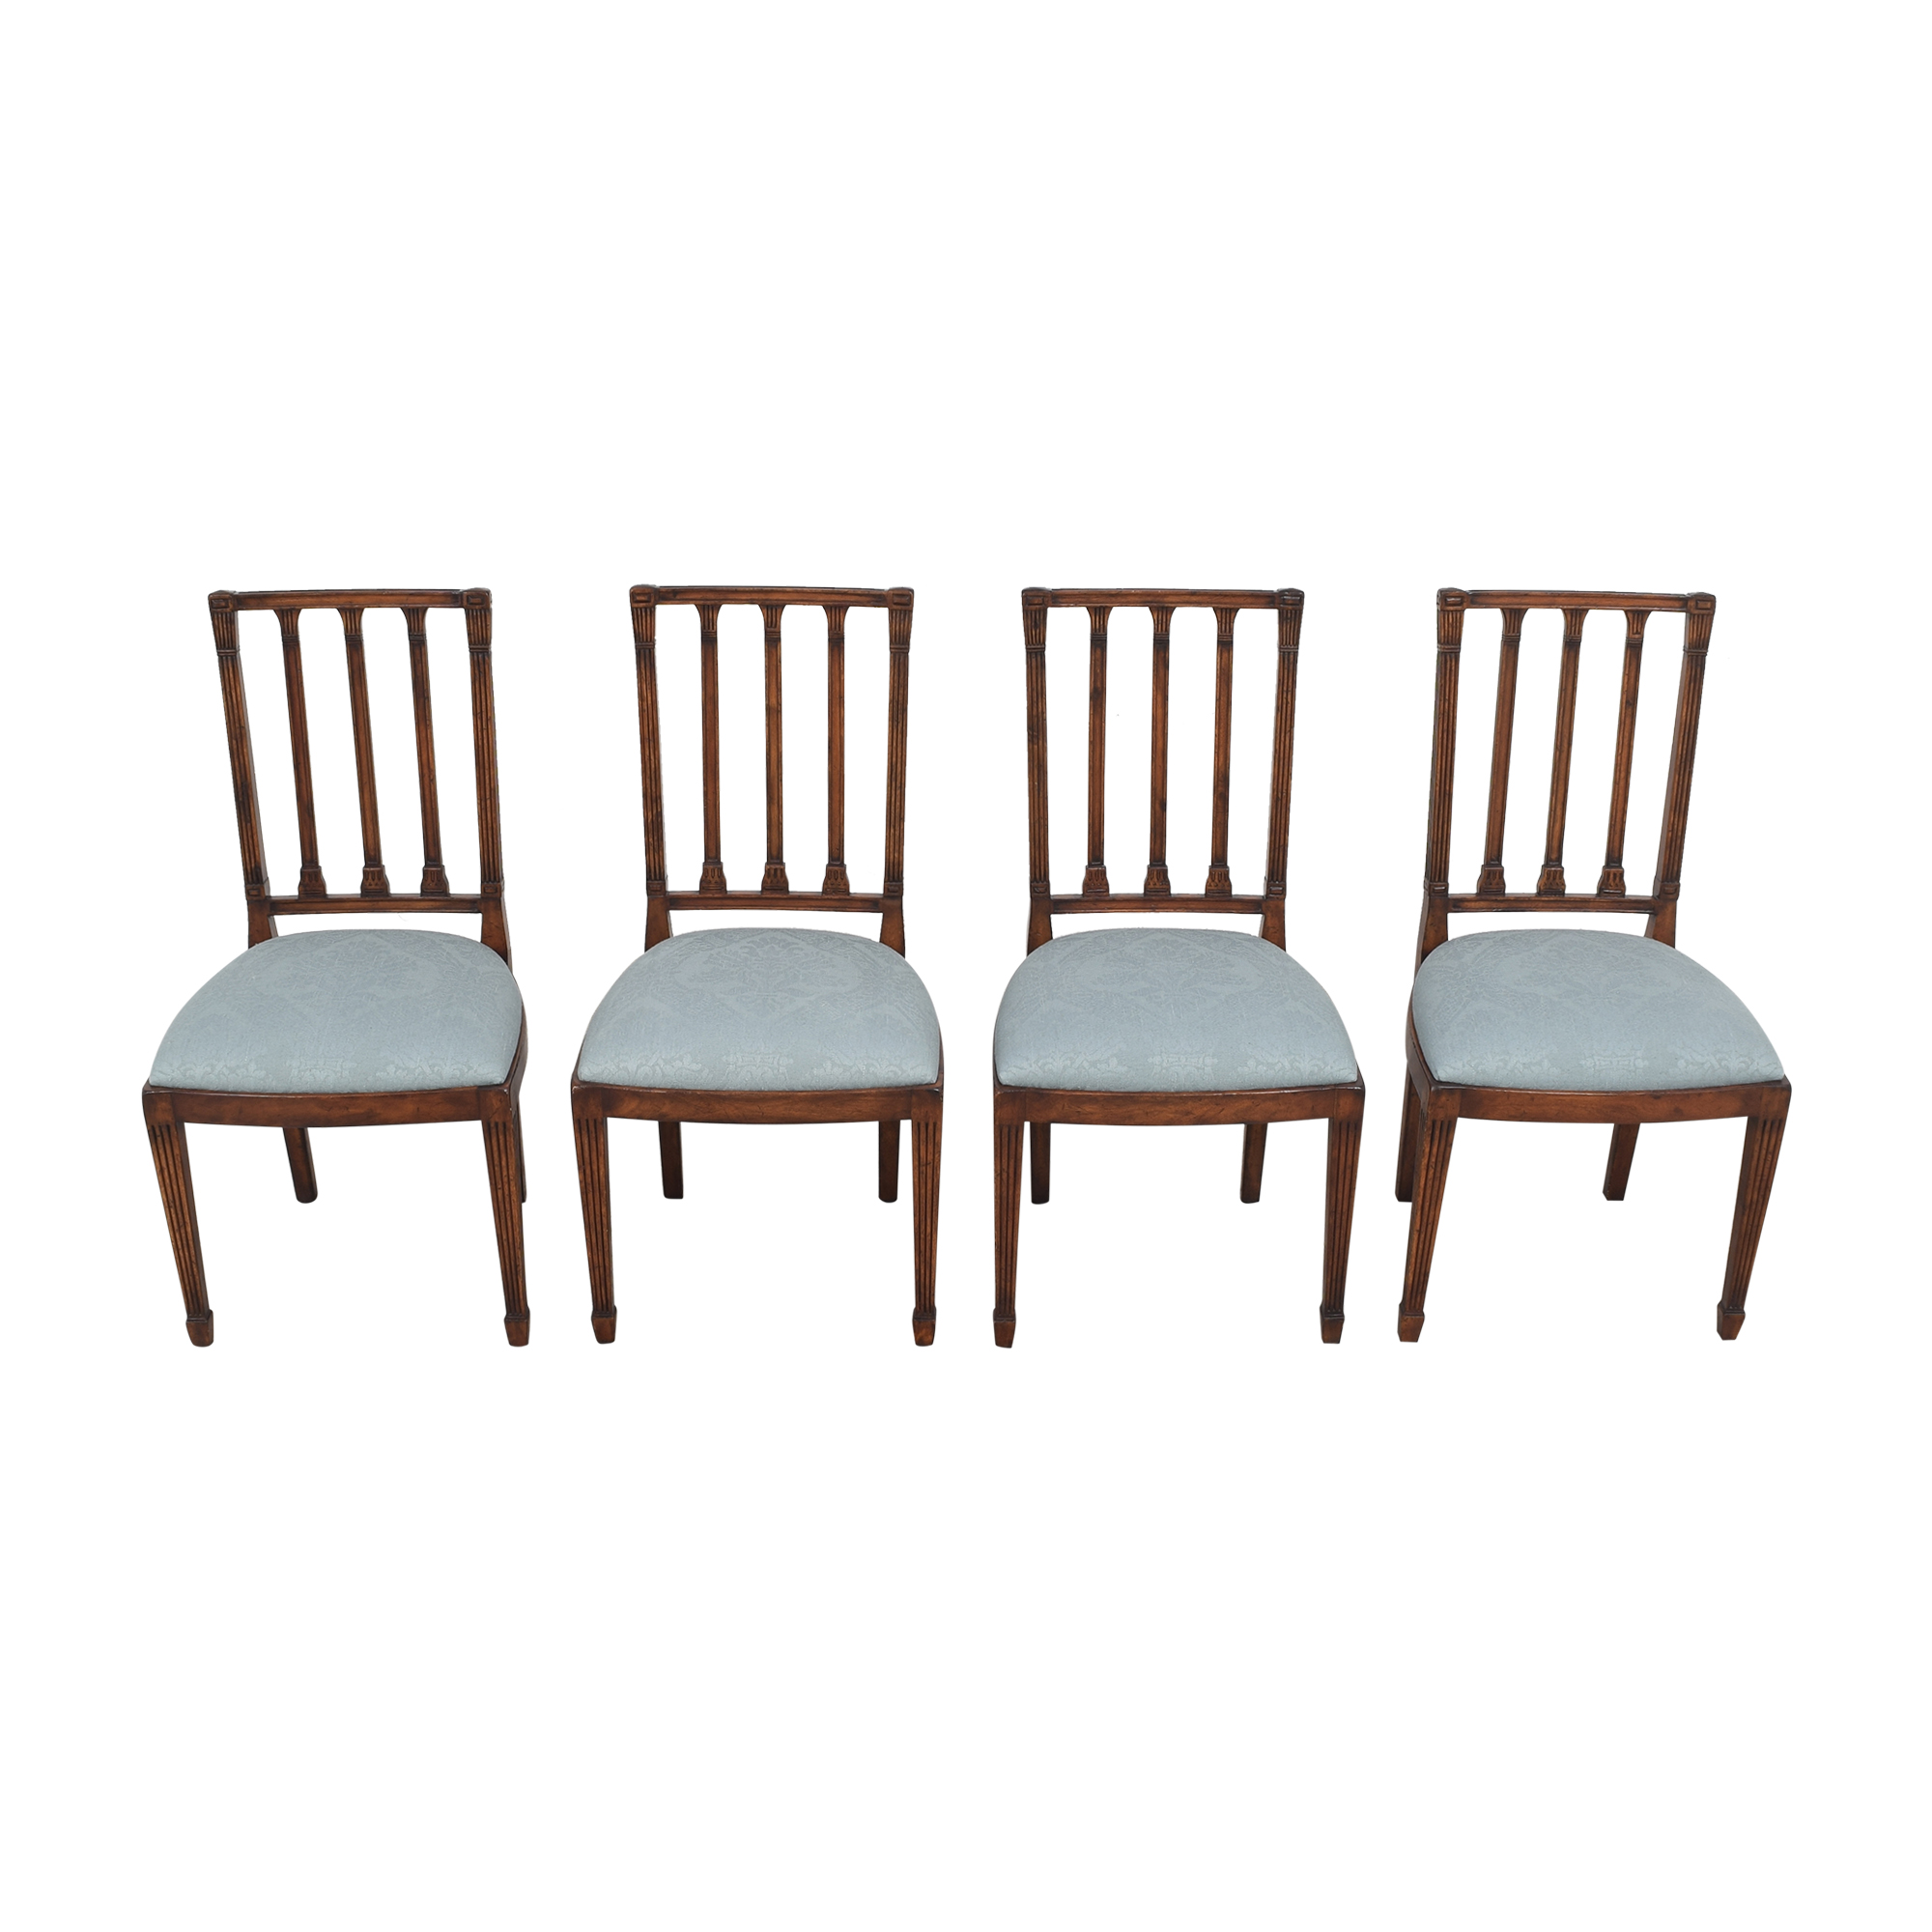 English Country Home English Country Home Upholstered Dining Chairs dimensions